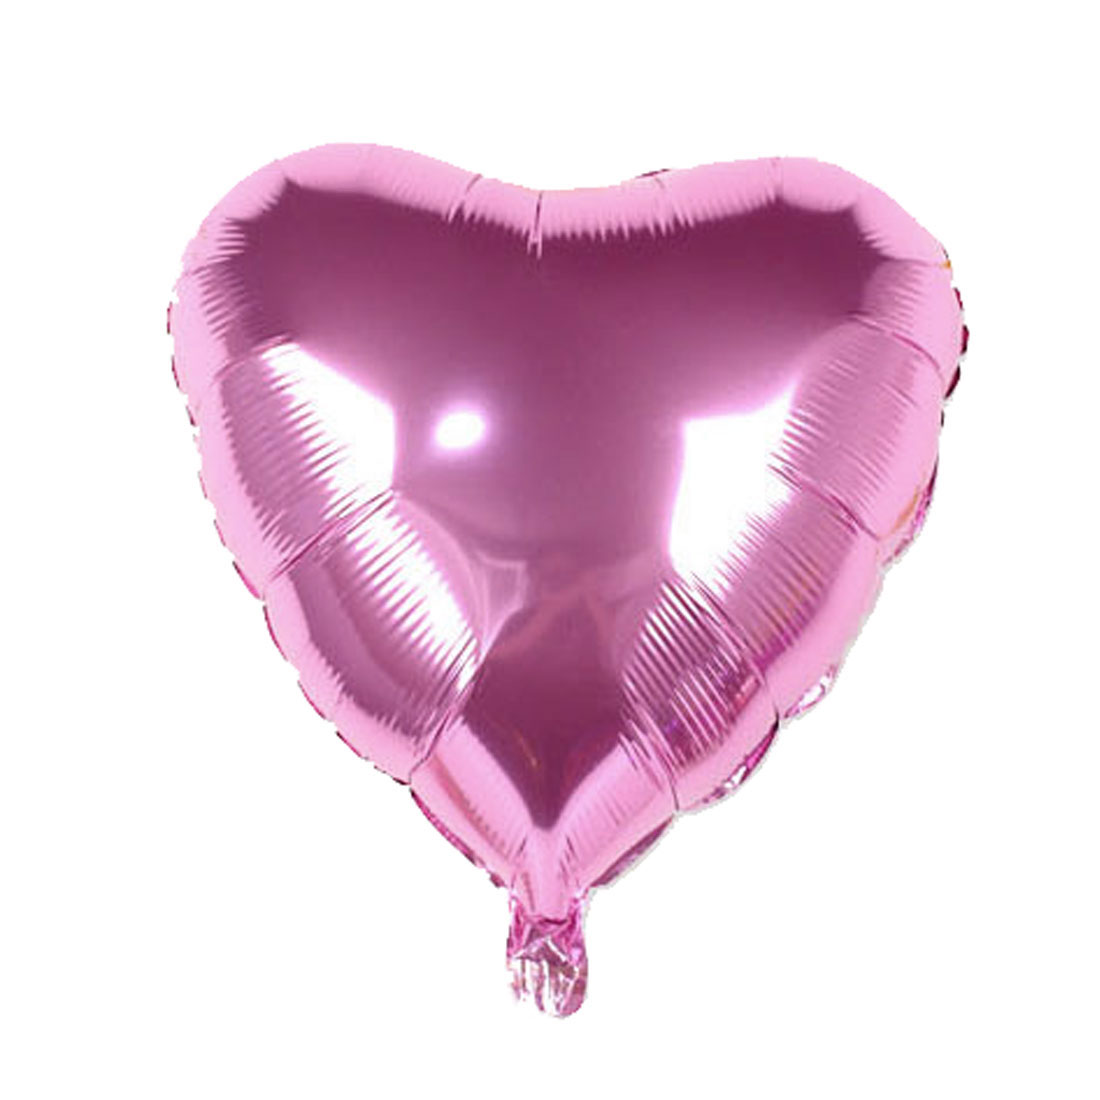 Unique Bargains Foil Heart Shape Balloon Wedding Birthday Celebration Decor Pink 23""